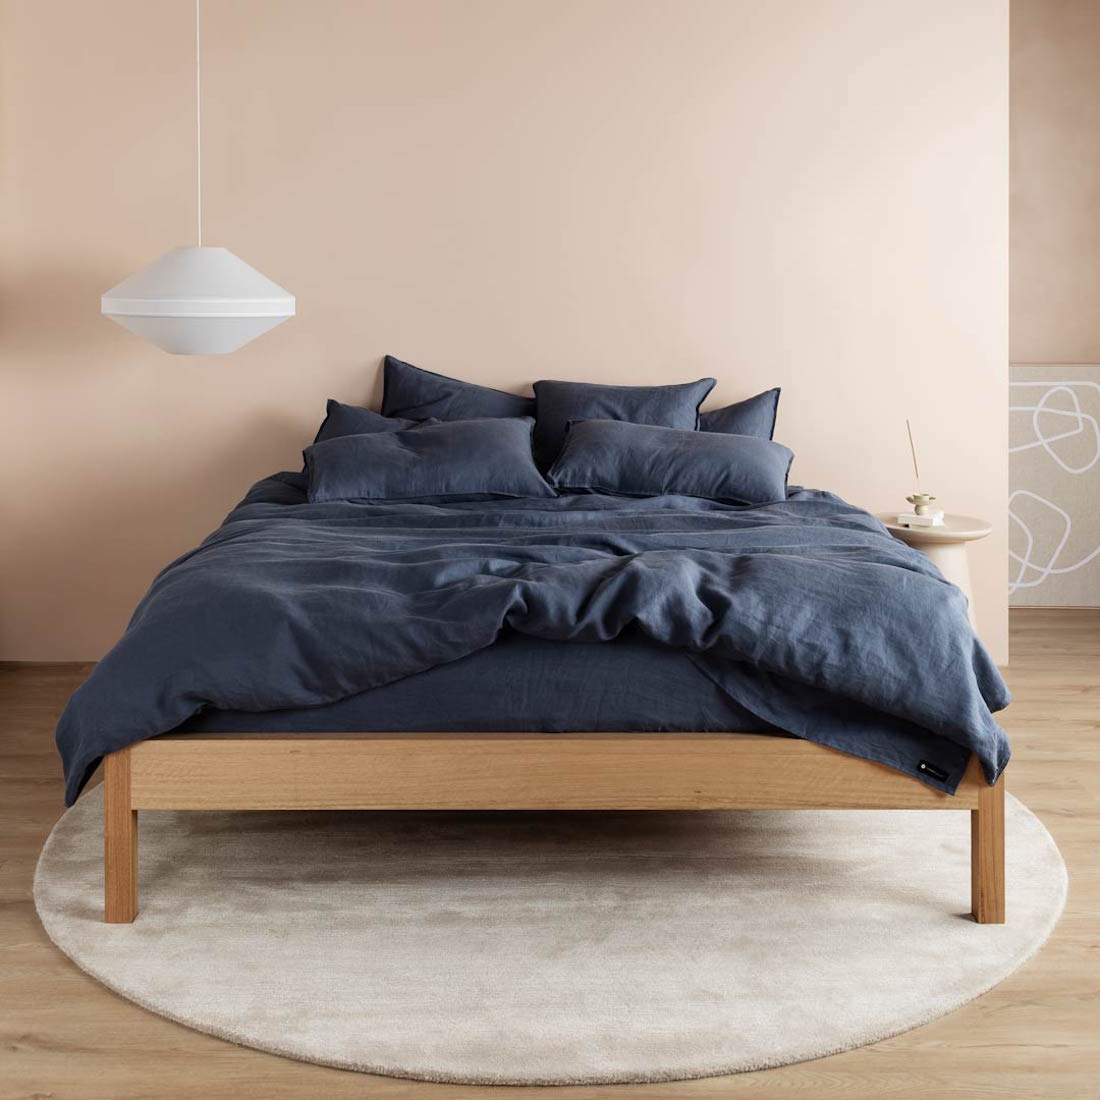 A bed with navy sheets looks cosy in a pink room.